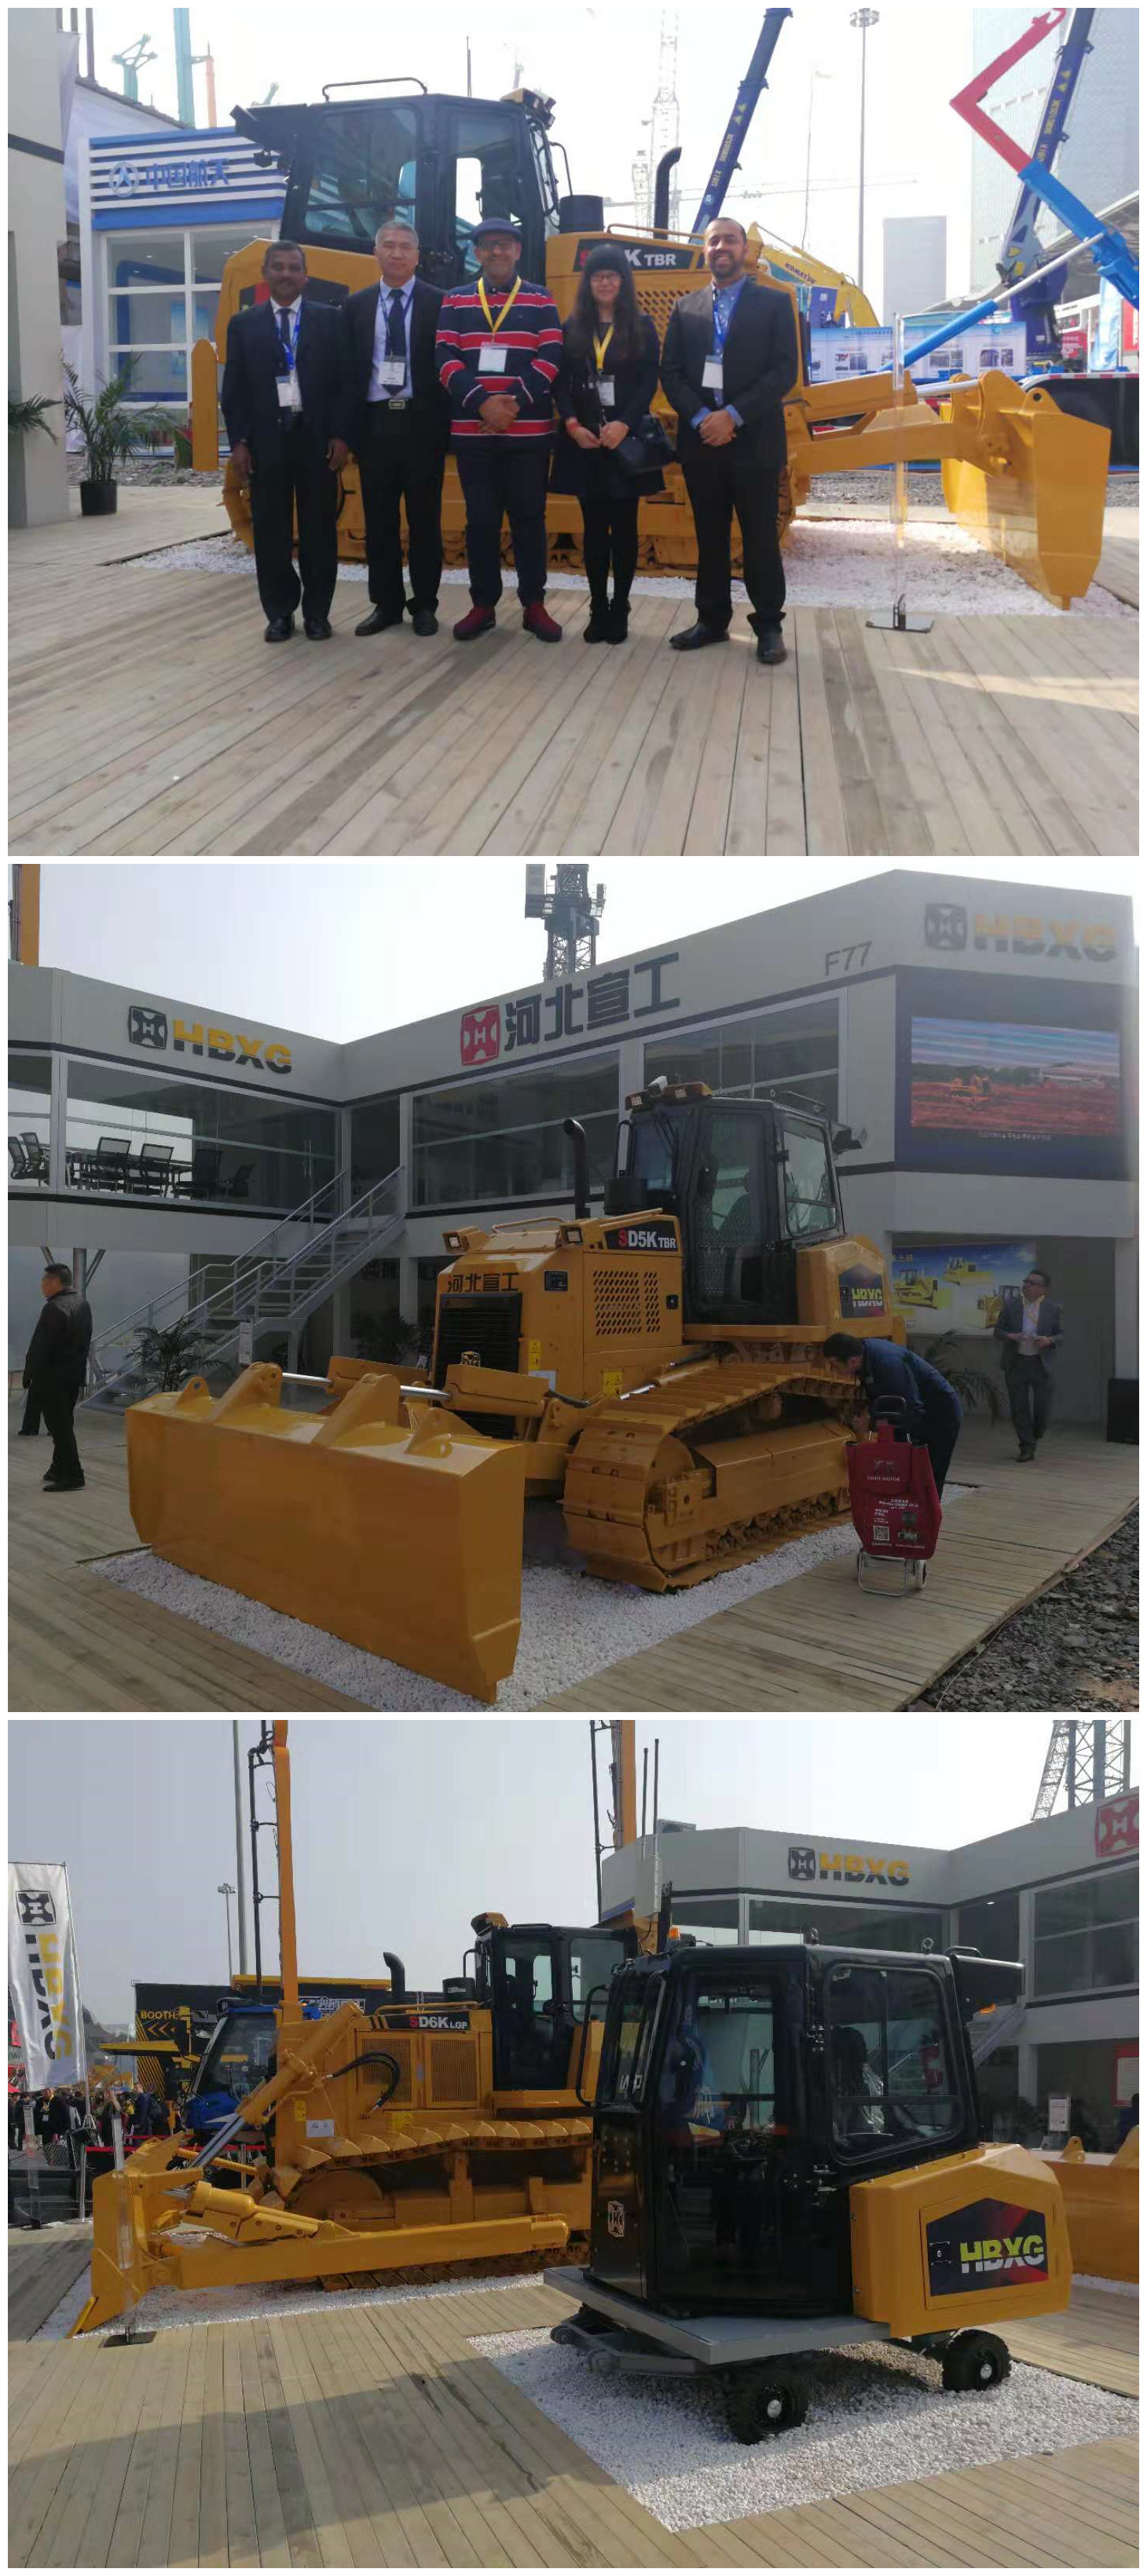 Bulldozer For Port Construction, Bulldozer For Agriculture, Bulldozer Used For Irrigation Engineering